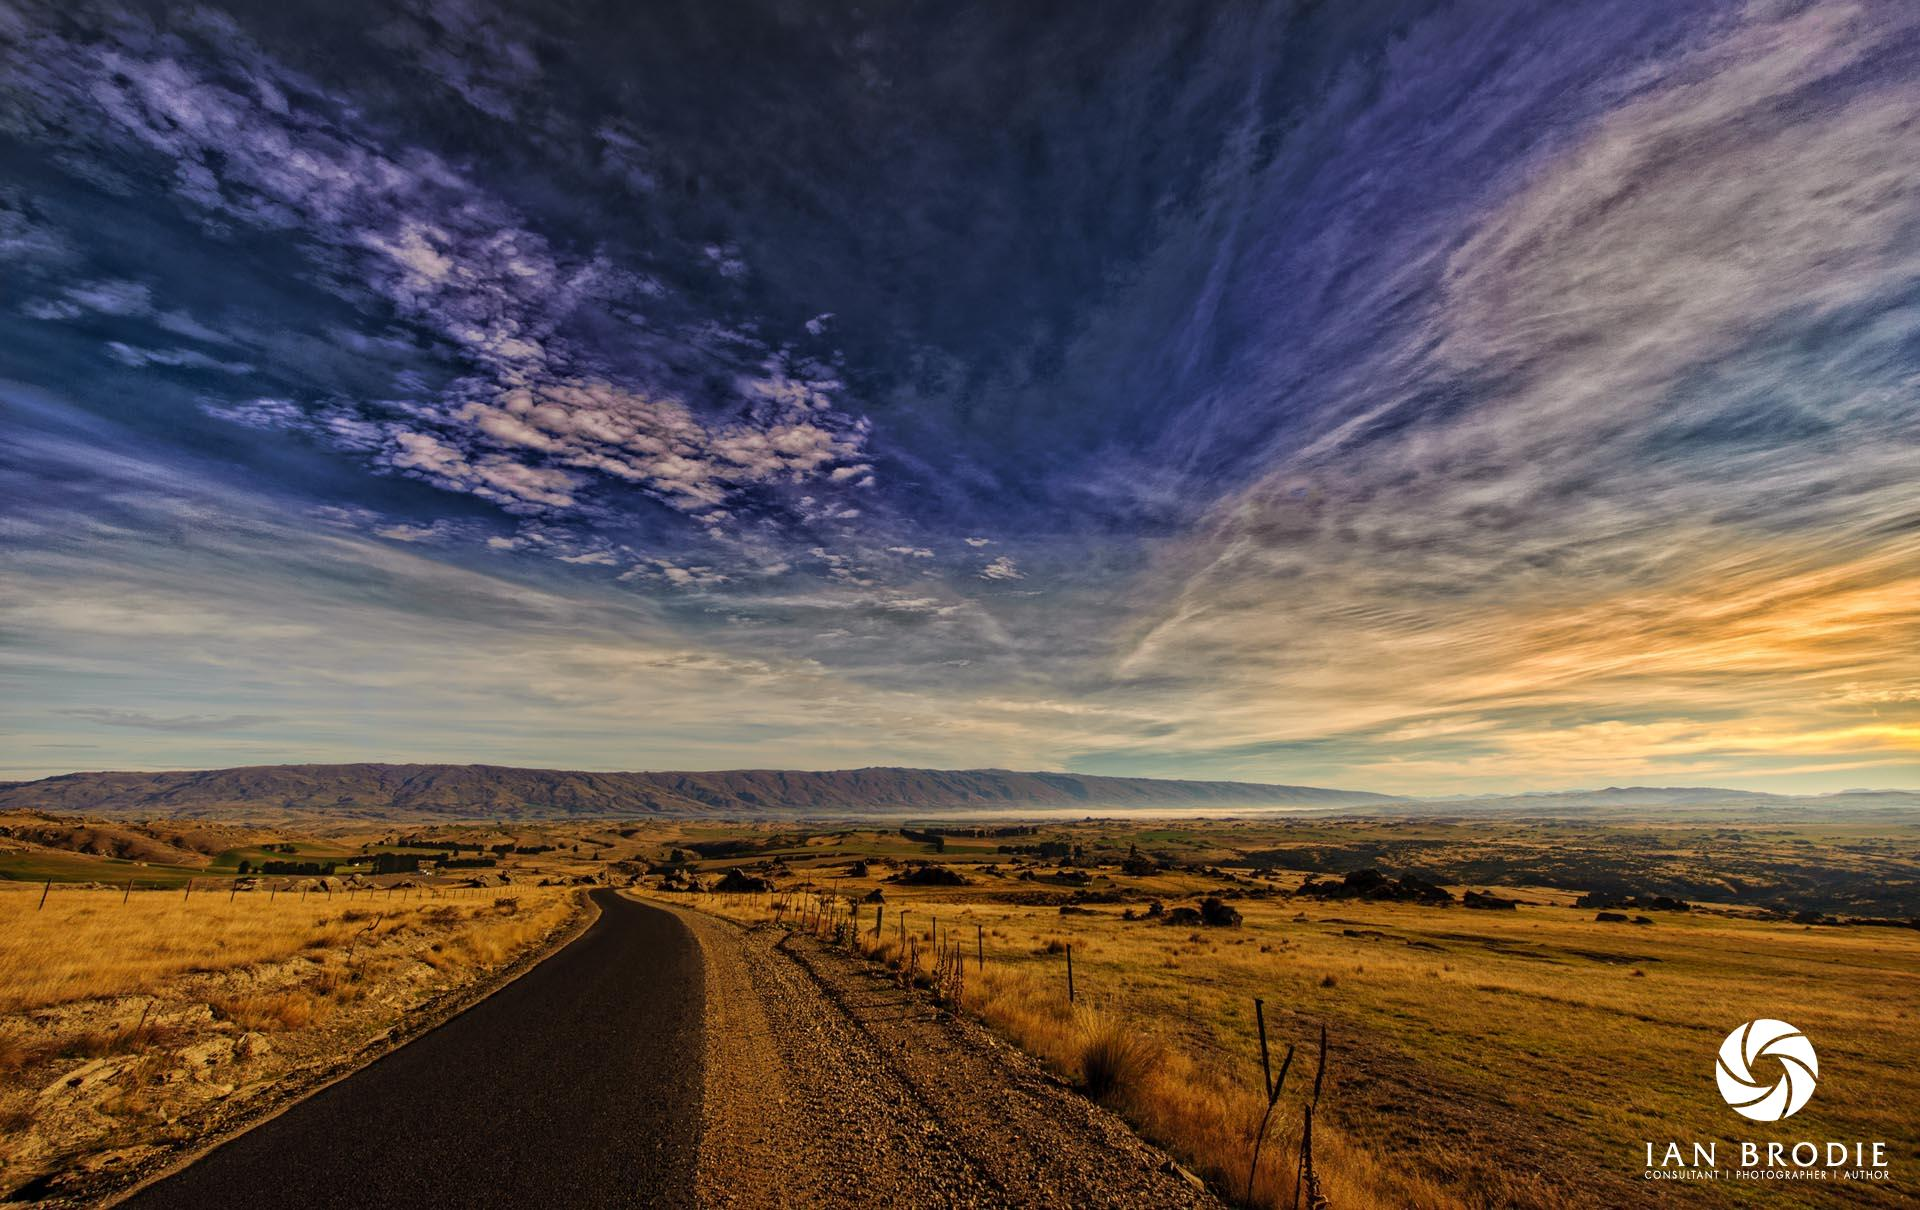 On the Road - New Zealand.